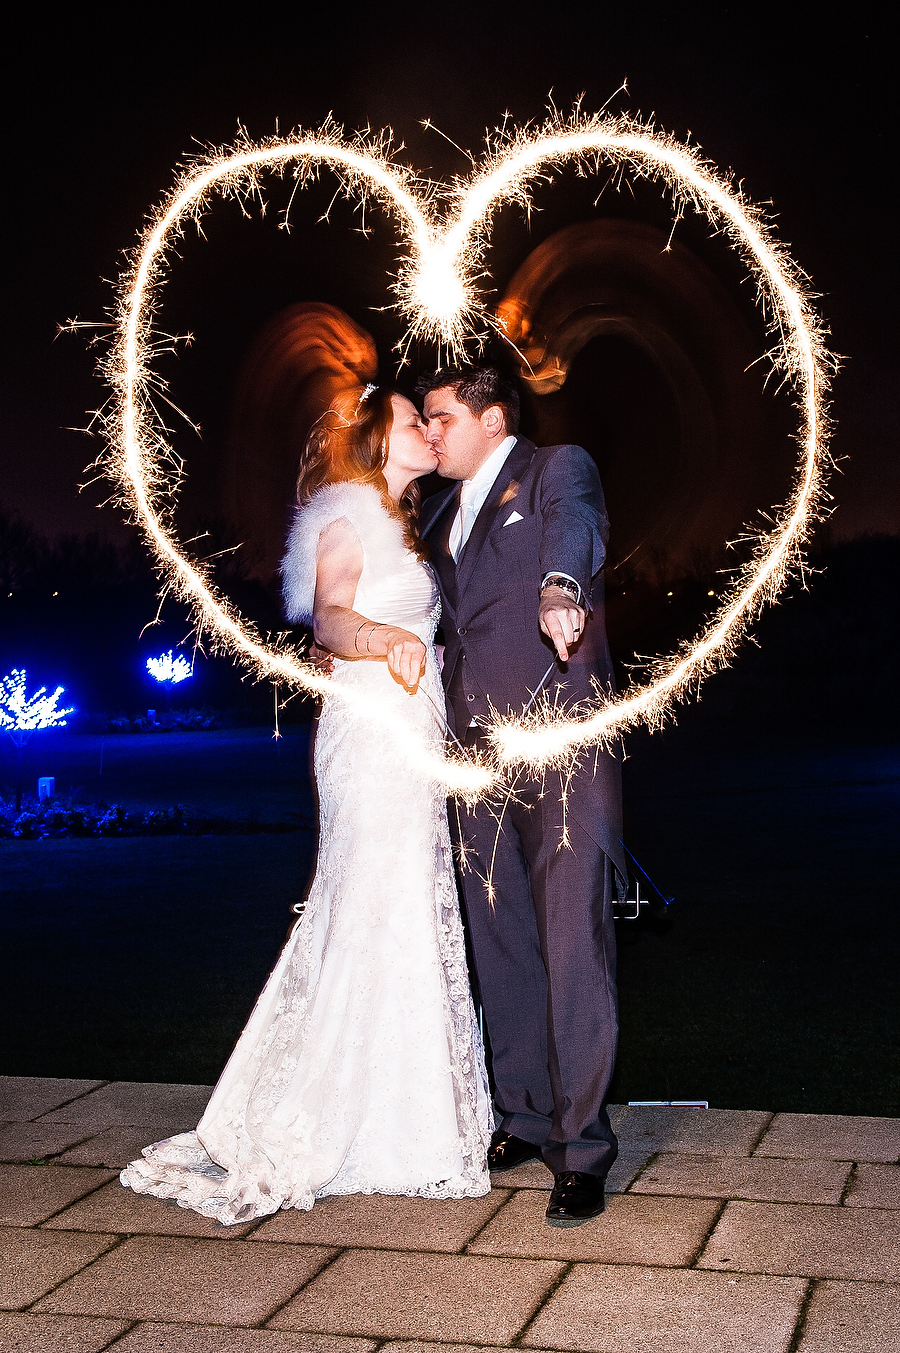 Creative photographs with sparklers at Calderfields in Walsall by Recommended Wedding Photographer Barry James